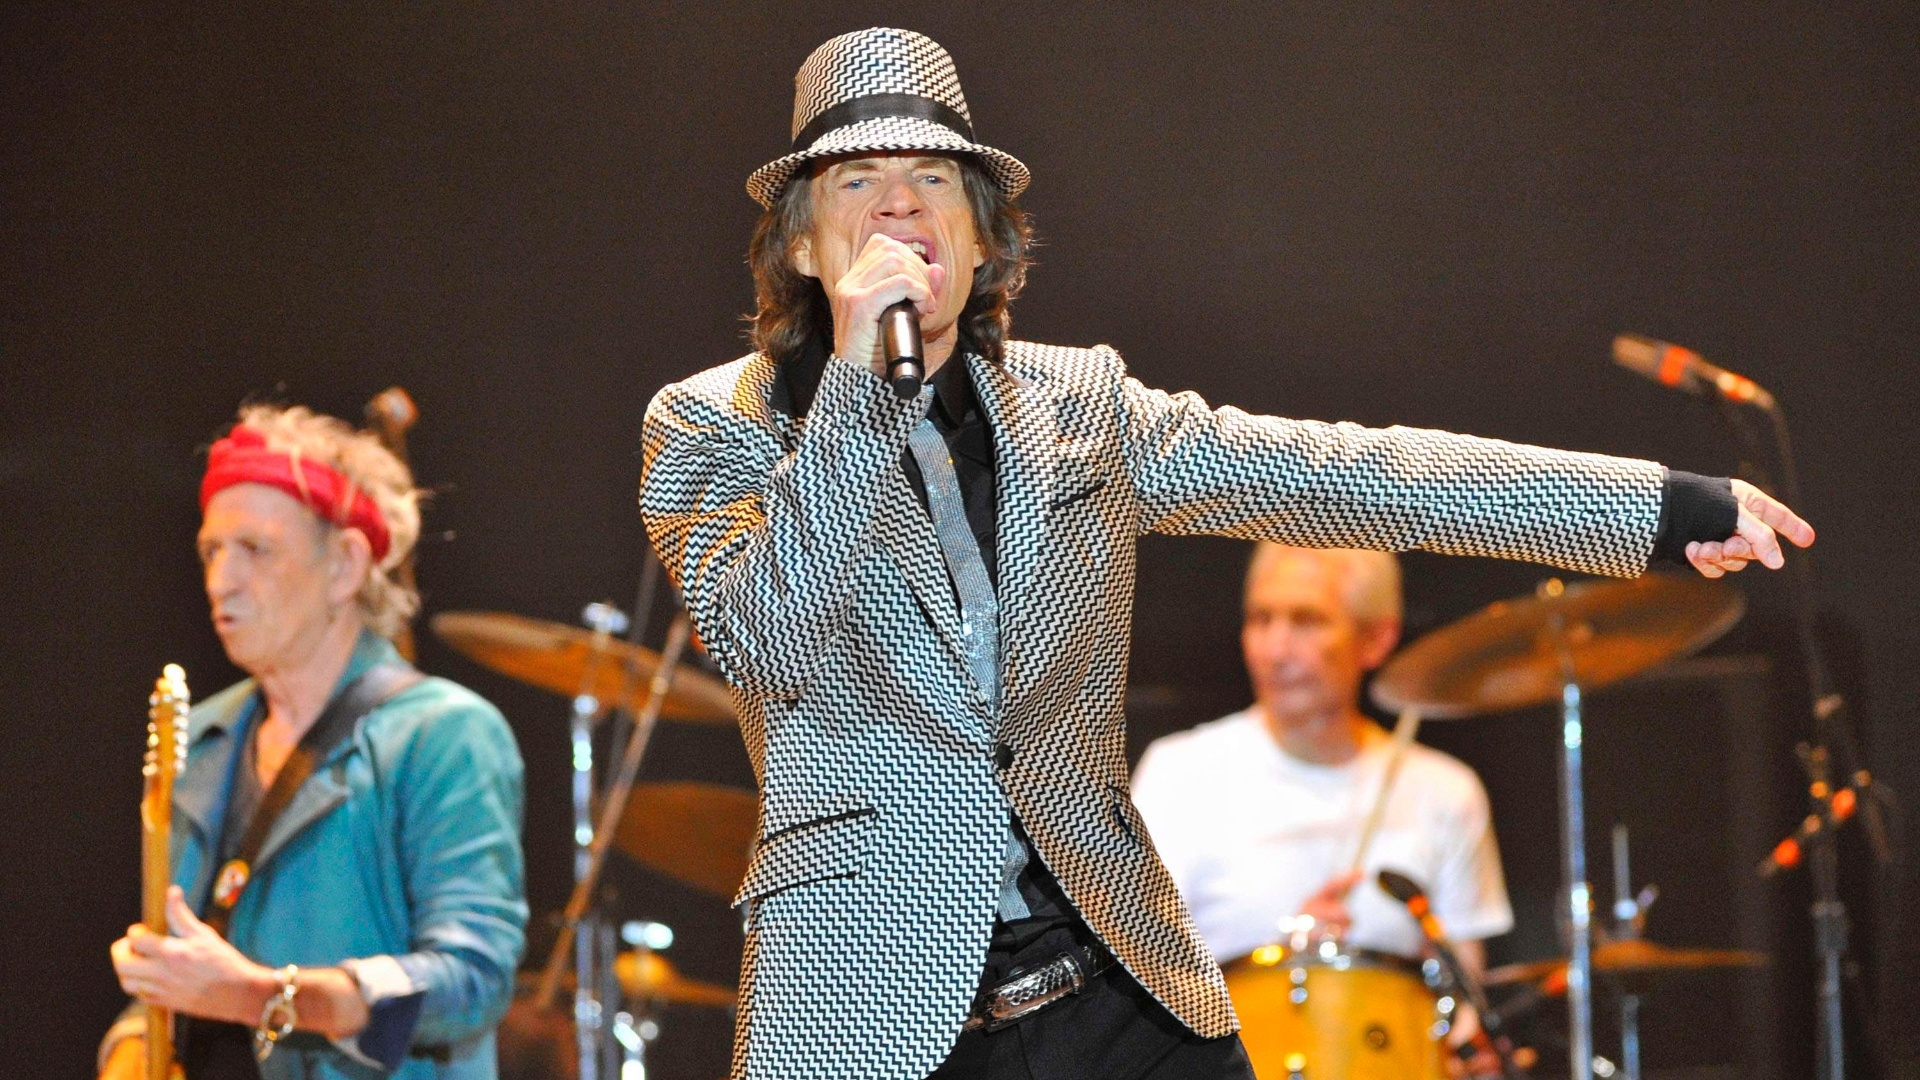 Os Rolling Stones apresentam seu aguardado retorno aos palcos, cinco anos aps sua ltima turn, neste domingo (25/11/12) em Londres